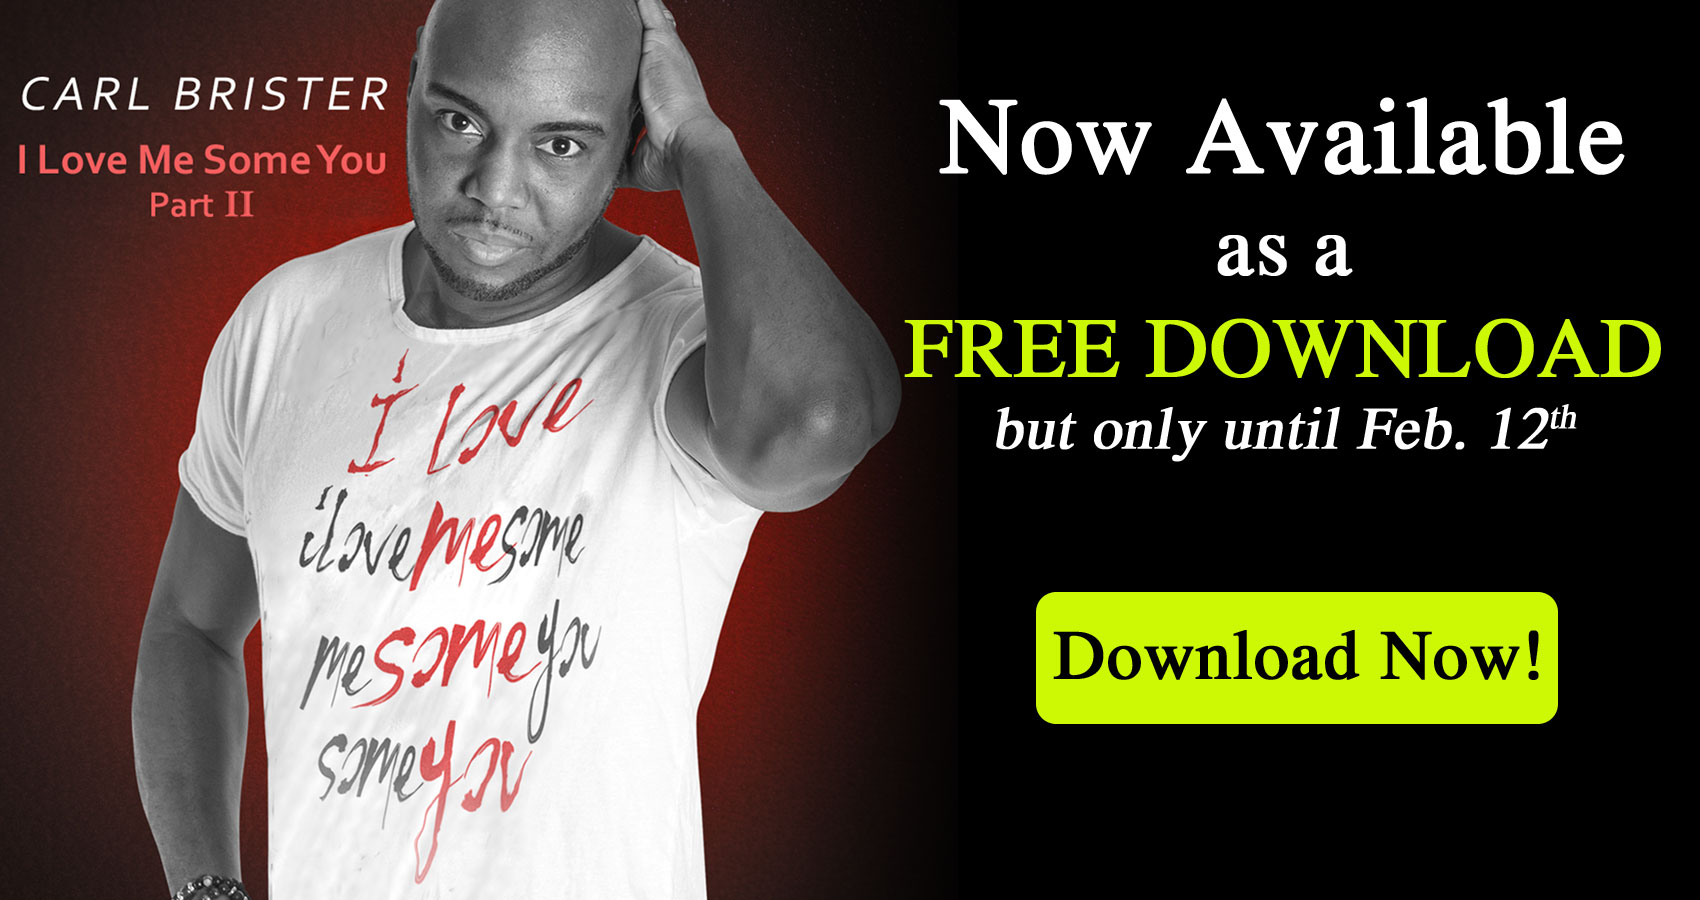 I Love Me Some You - part 2. Now available as a FREE DOWNLOAD but only until Feb. 12th